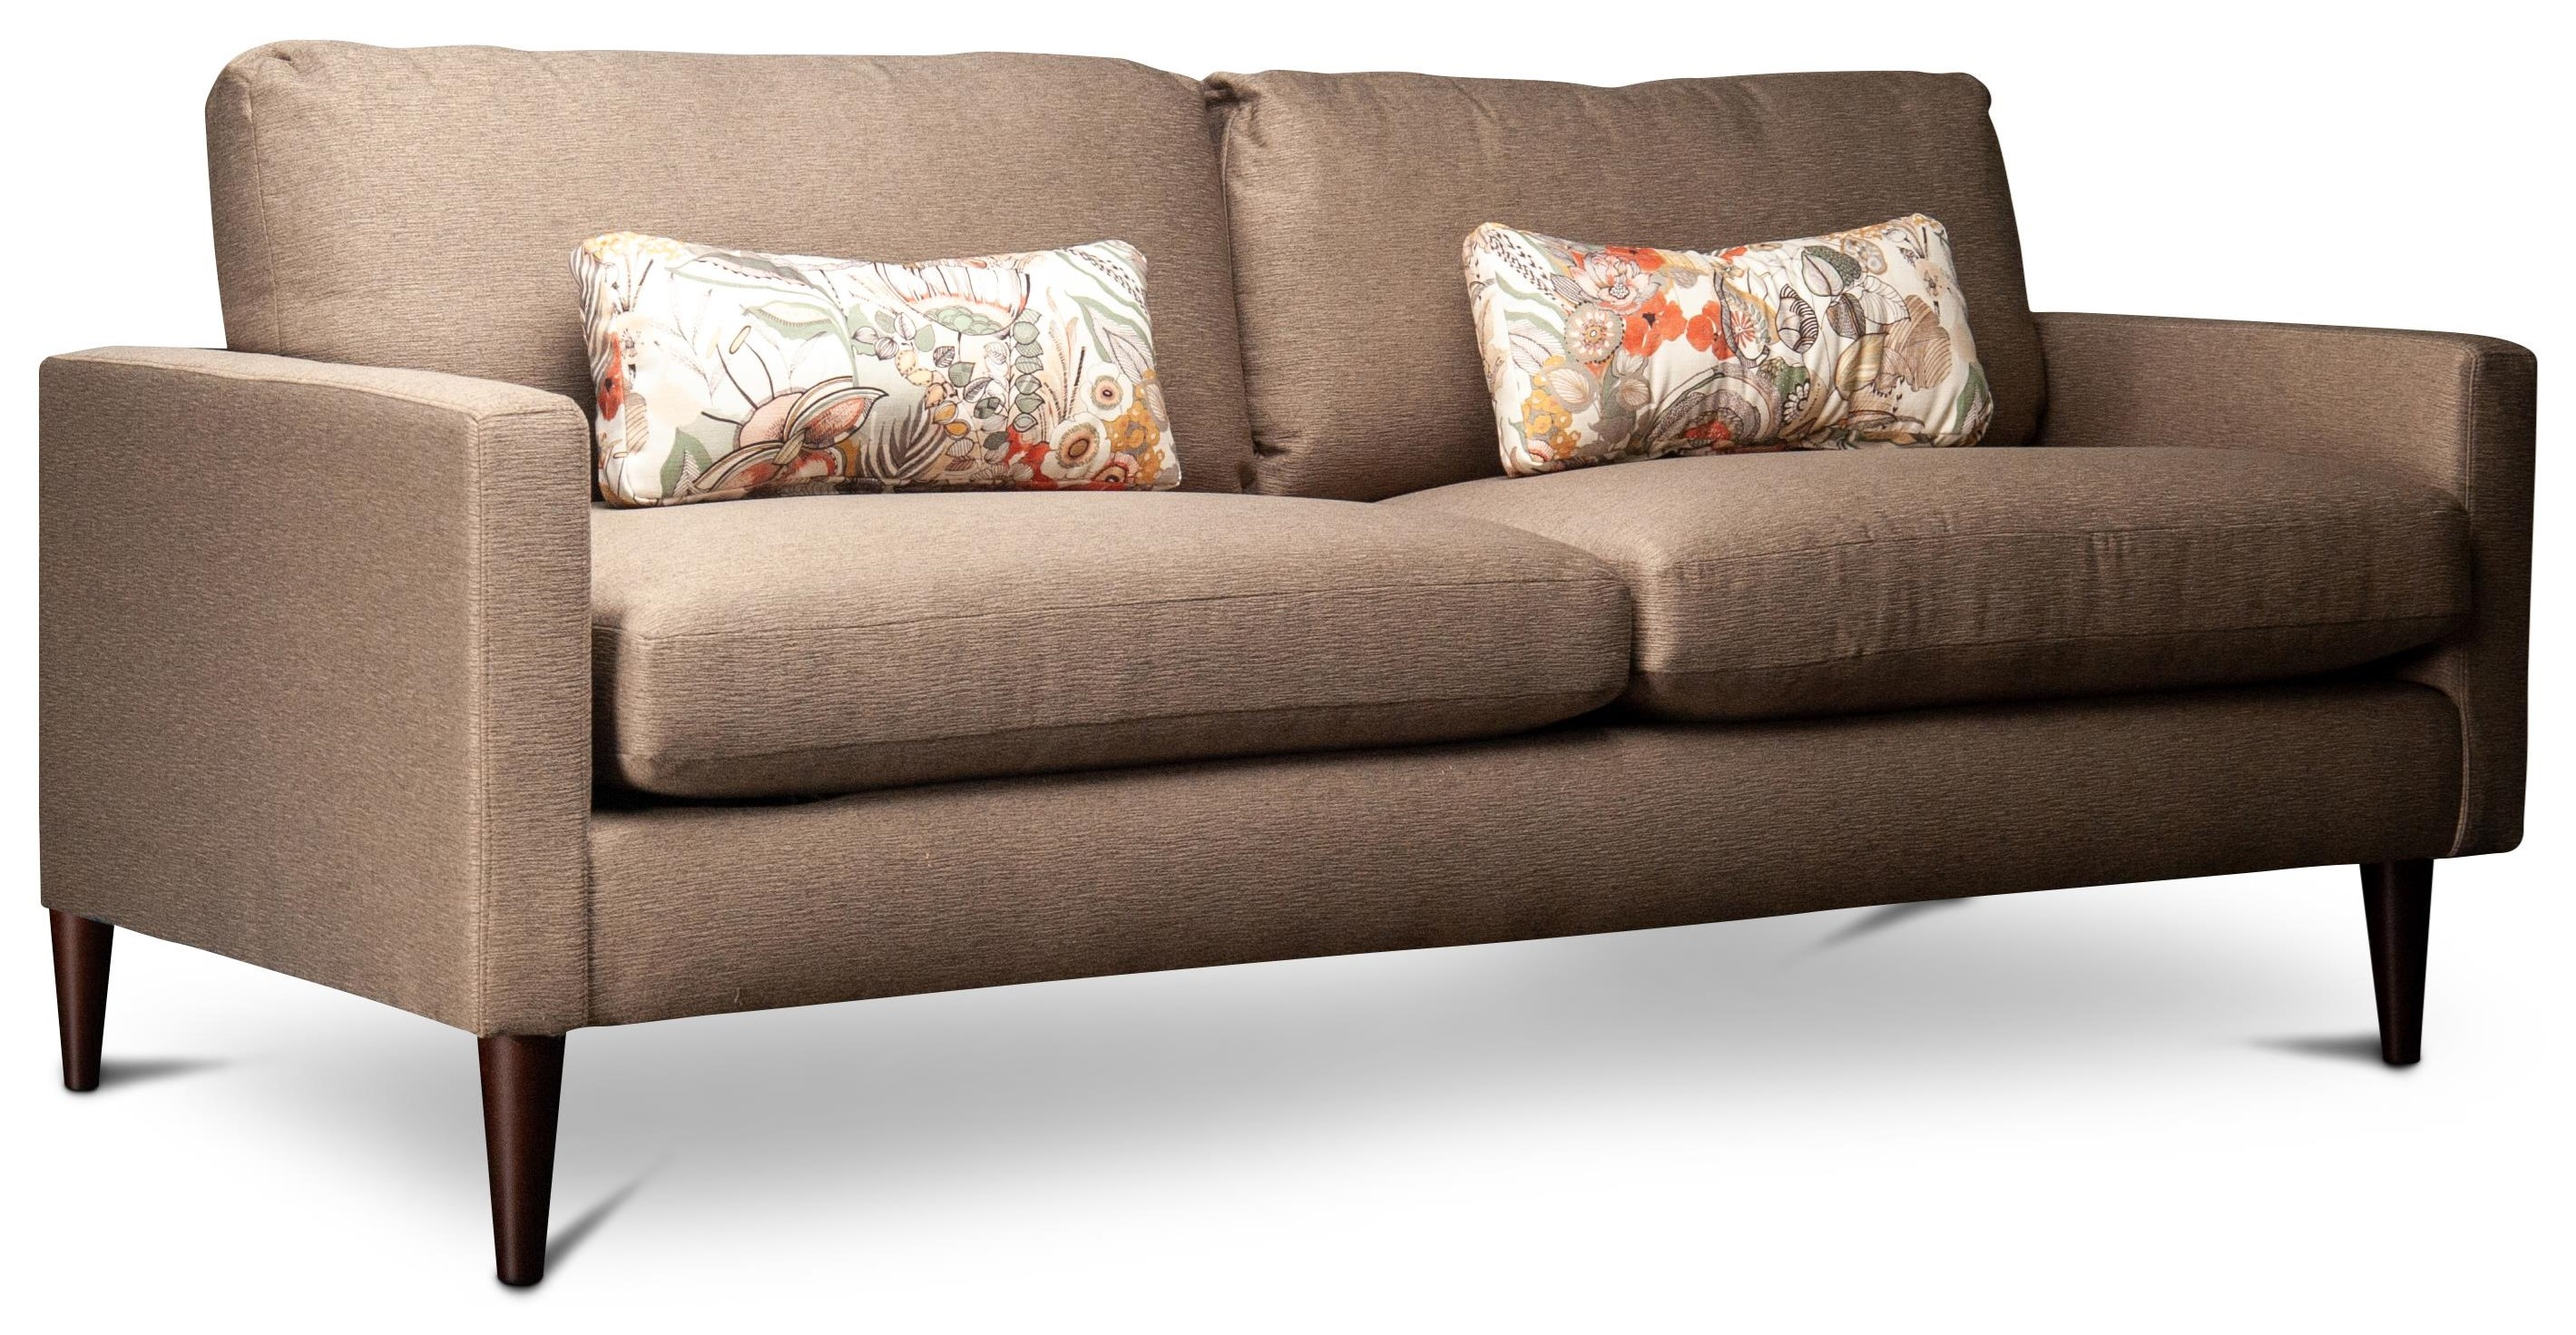 Madelyn Madelyn Sofa by Best Home Furnishings at Morris Home